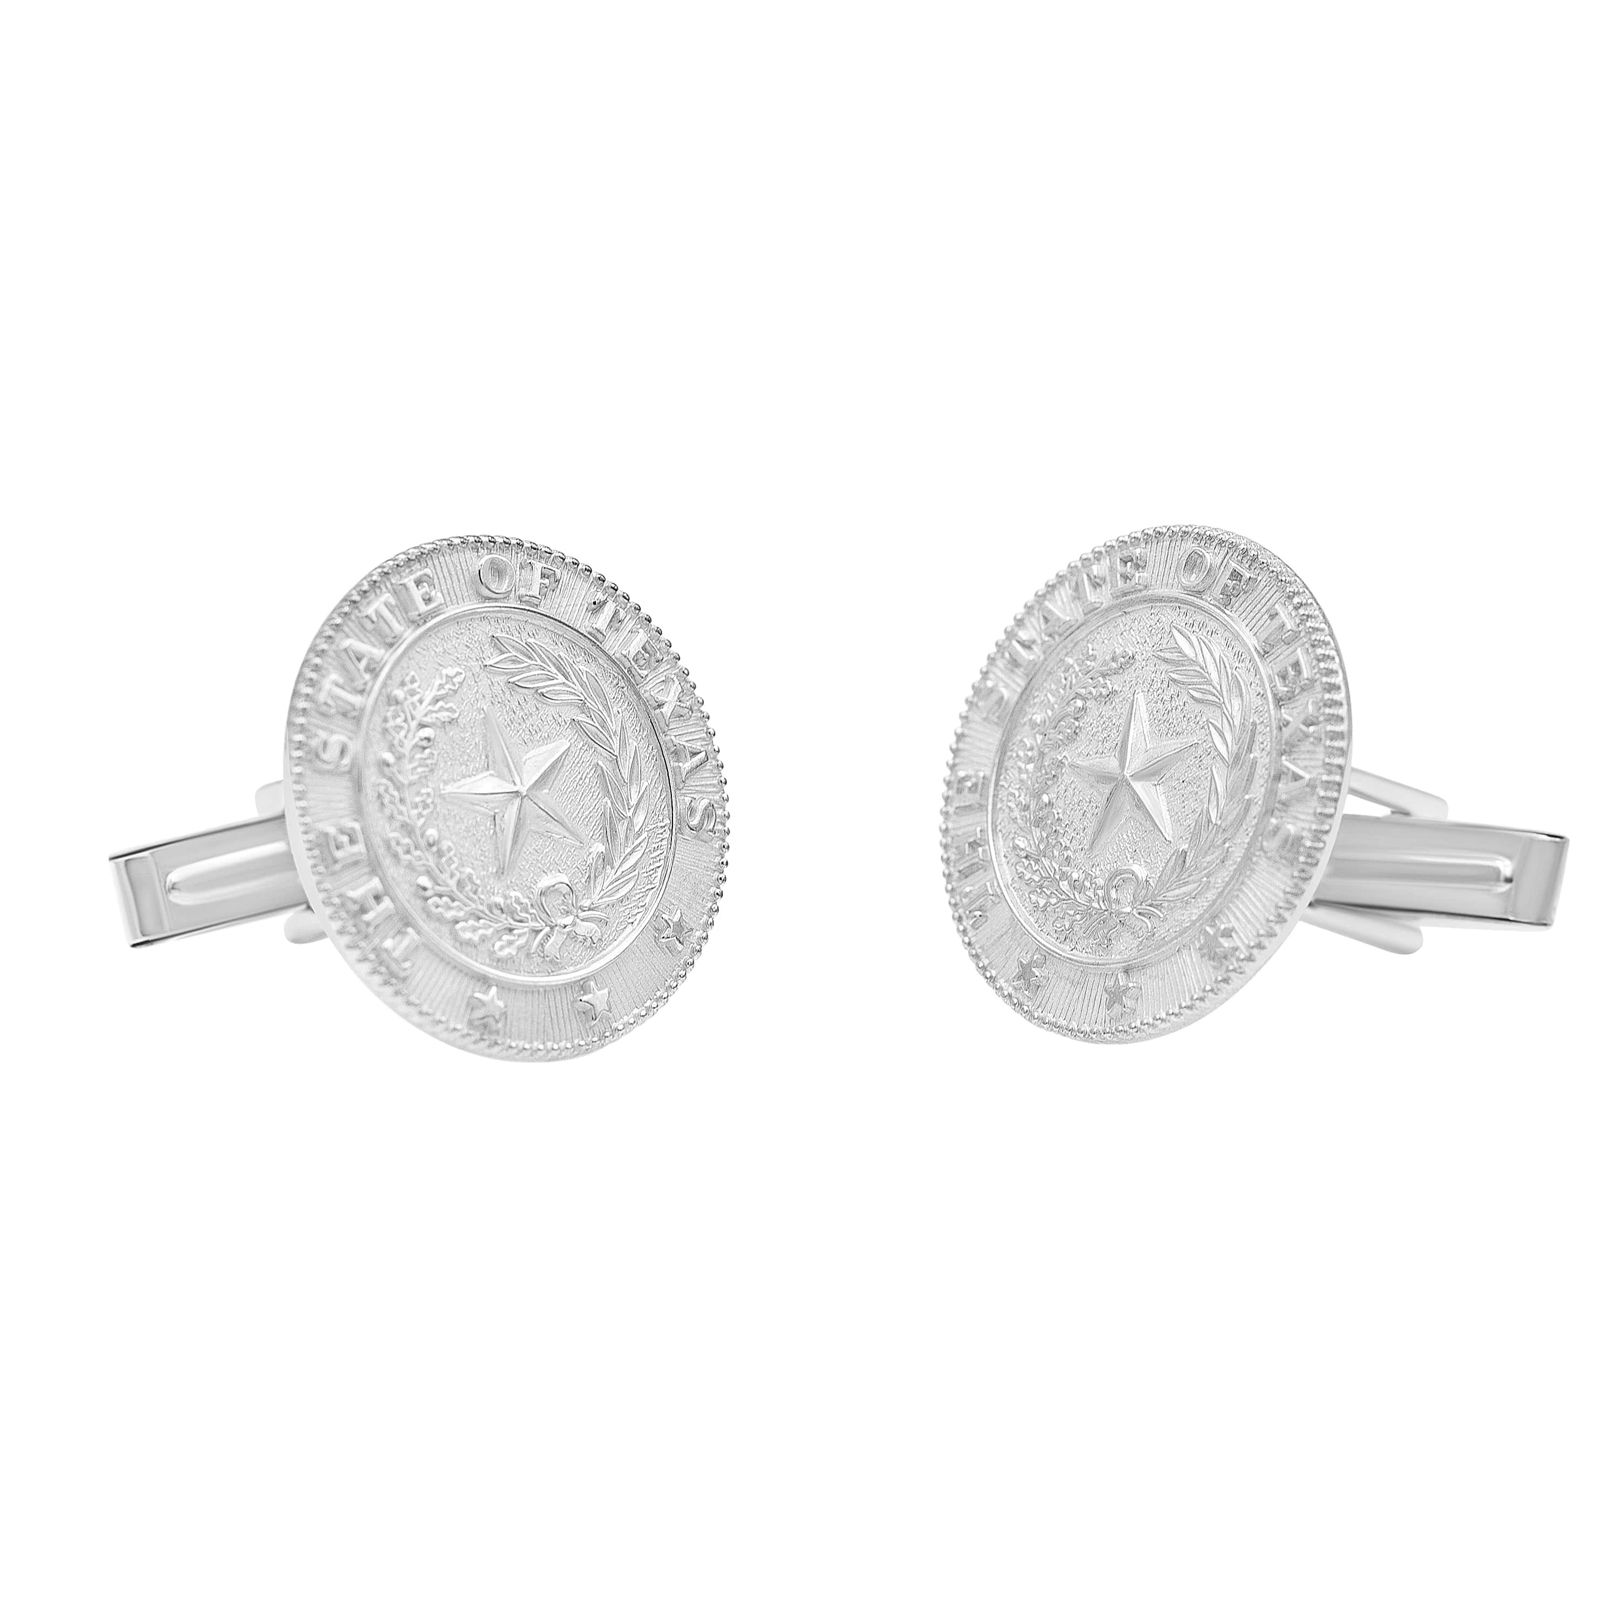 Texas State Seal Sterling Silver Cuff Links